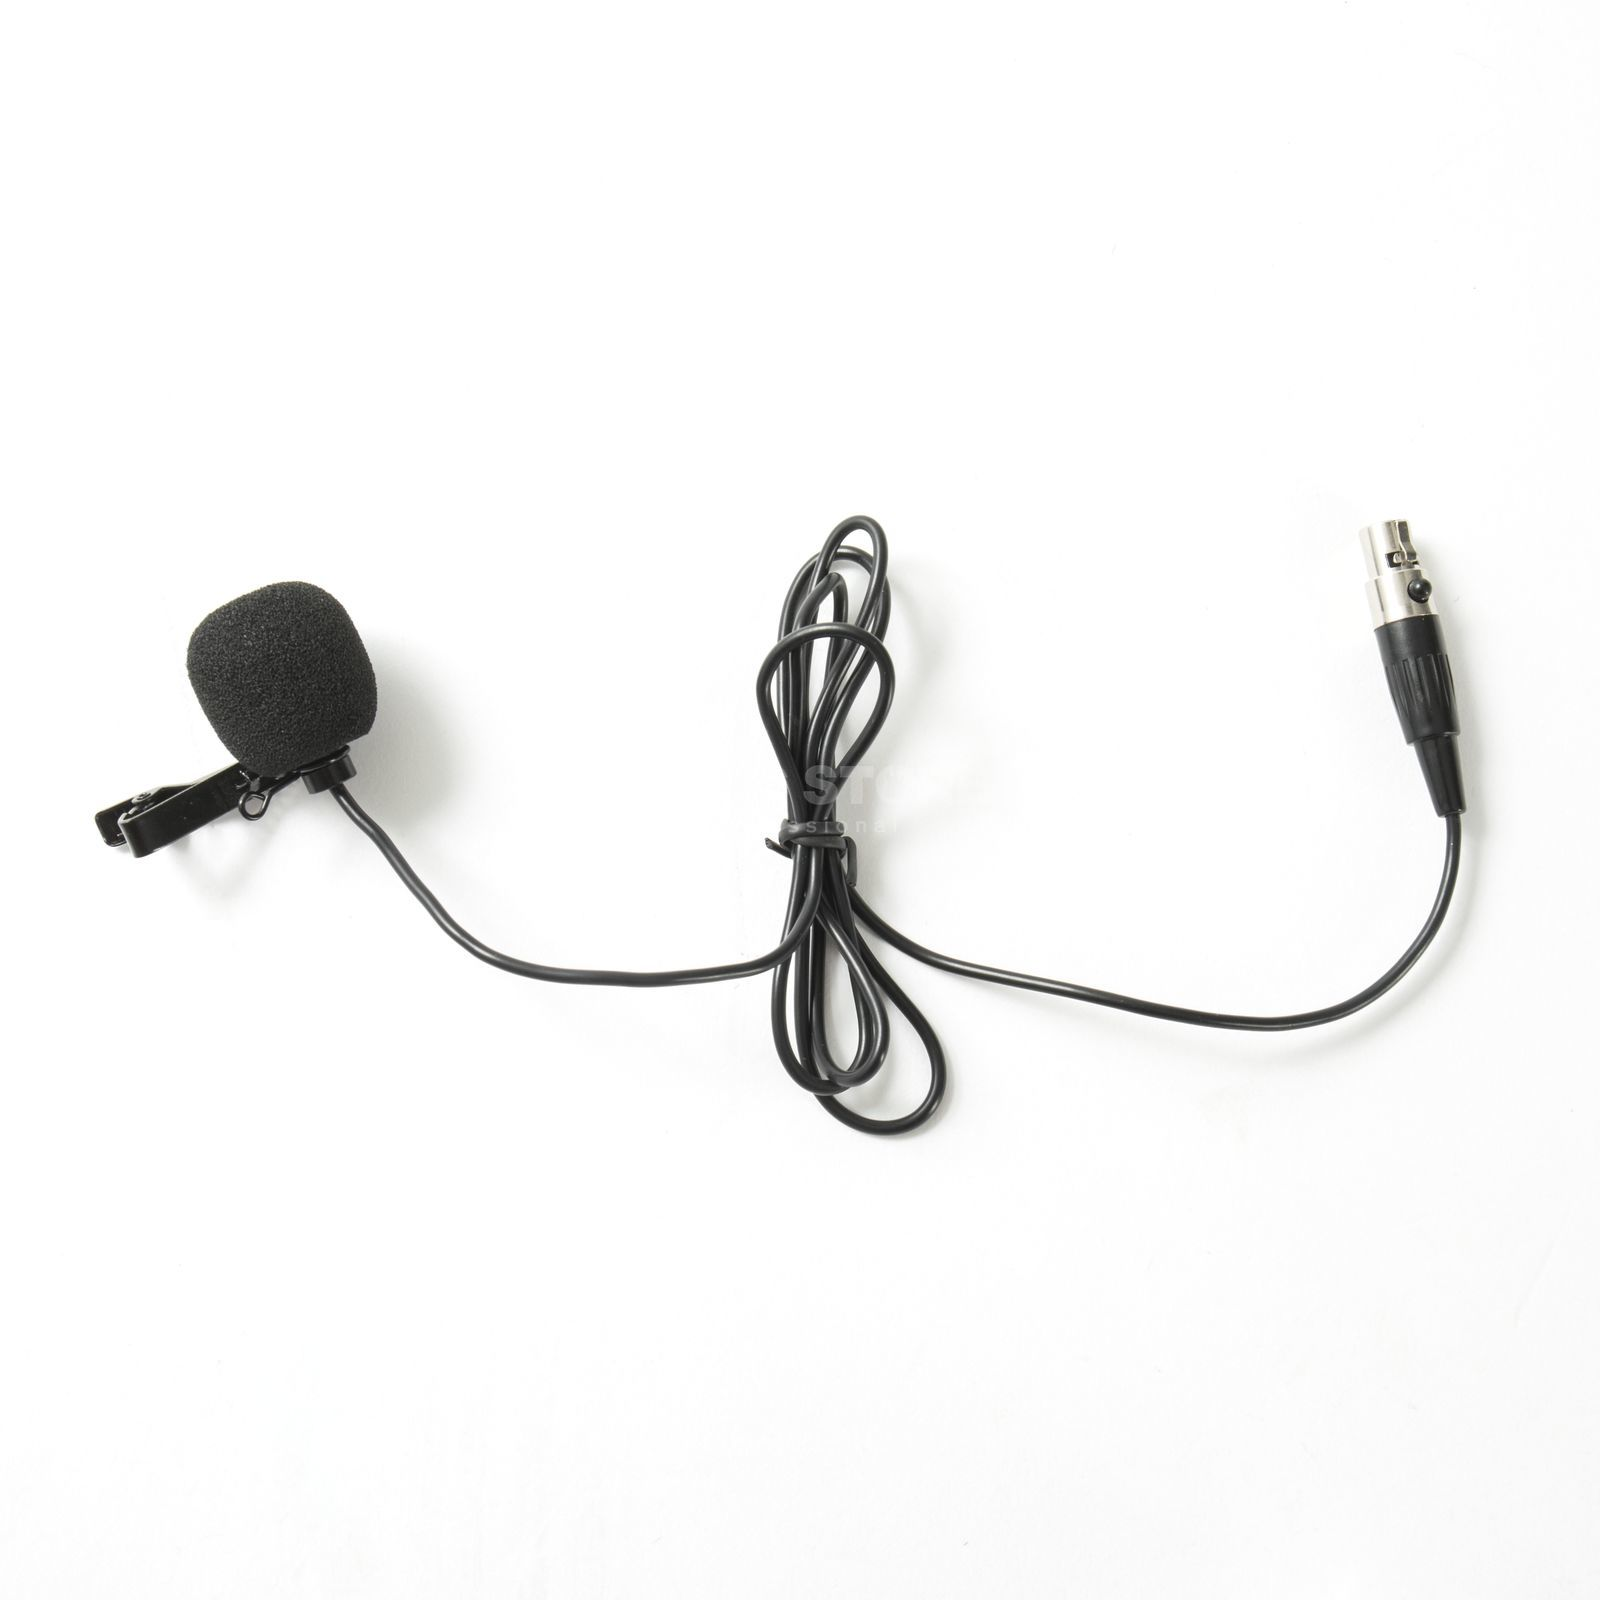 Fame audio MSW Pro LAV Lapel Microphone with mini XLR Product Image